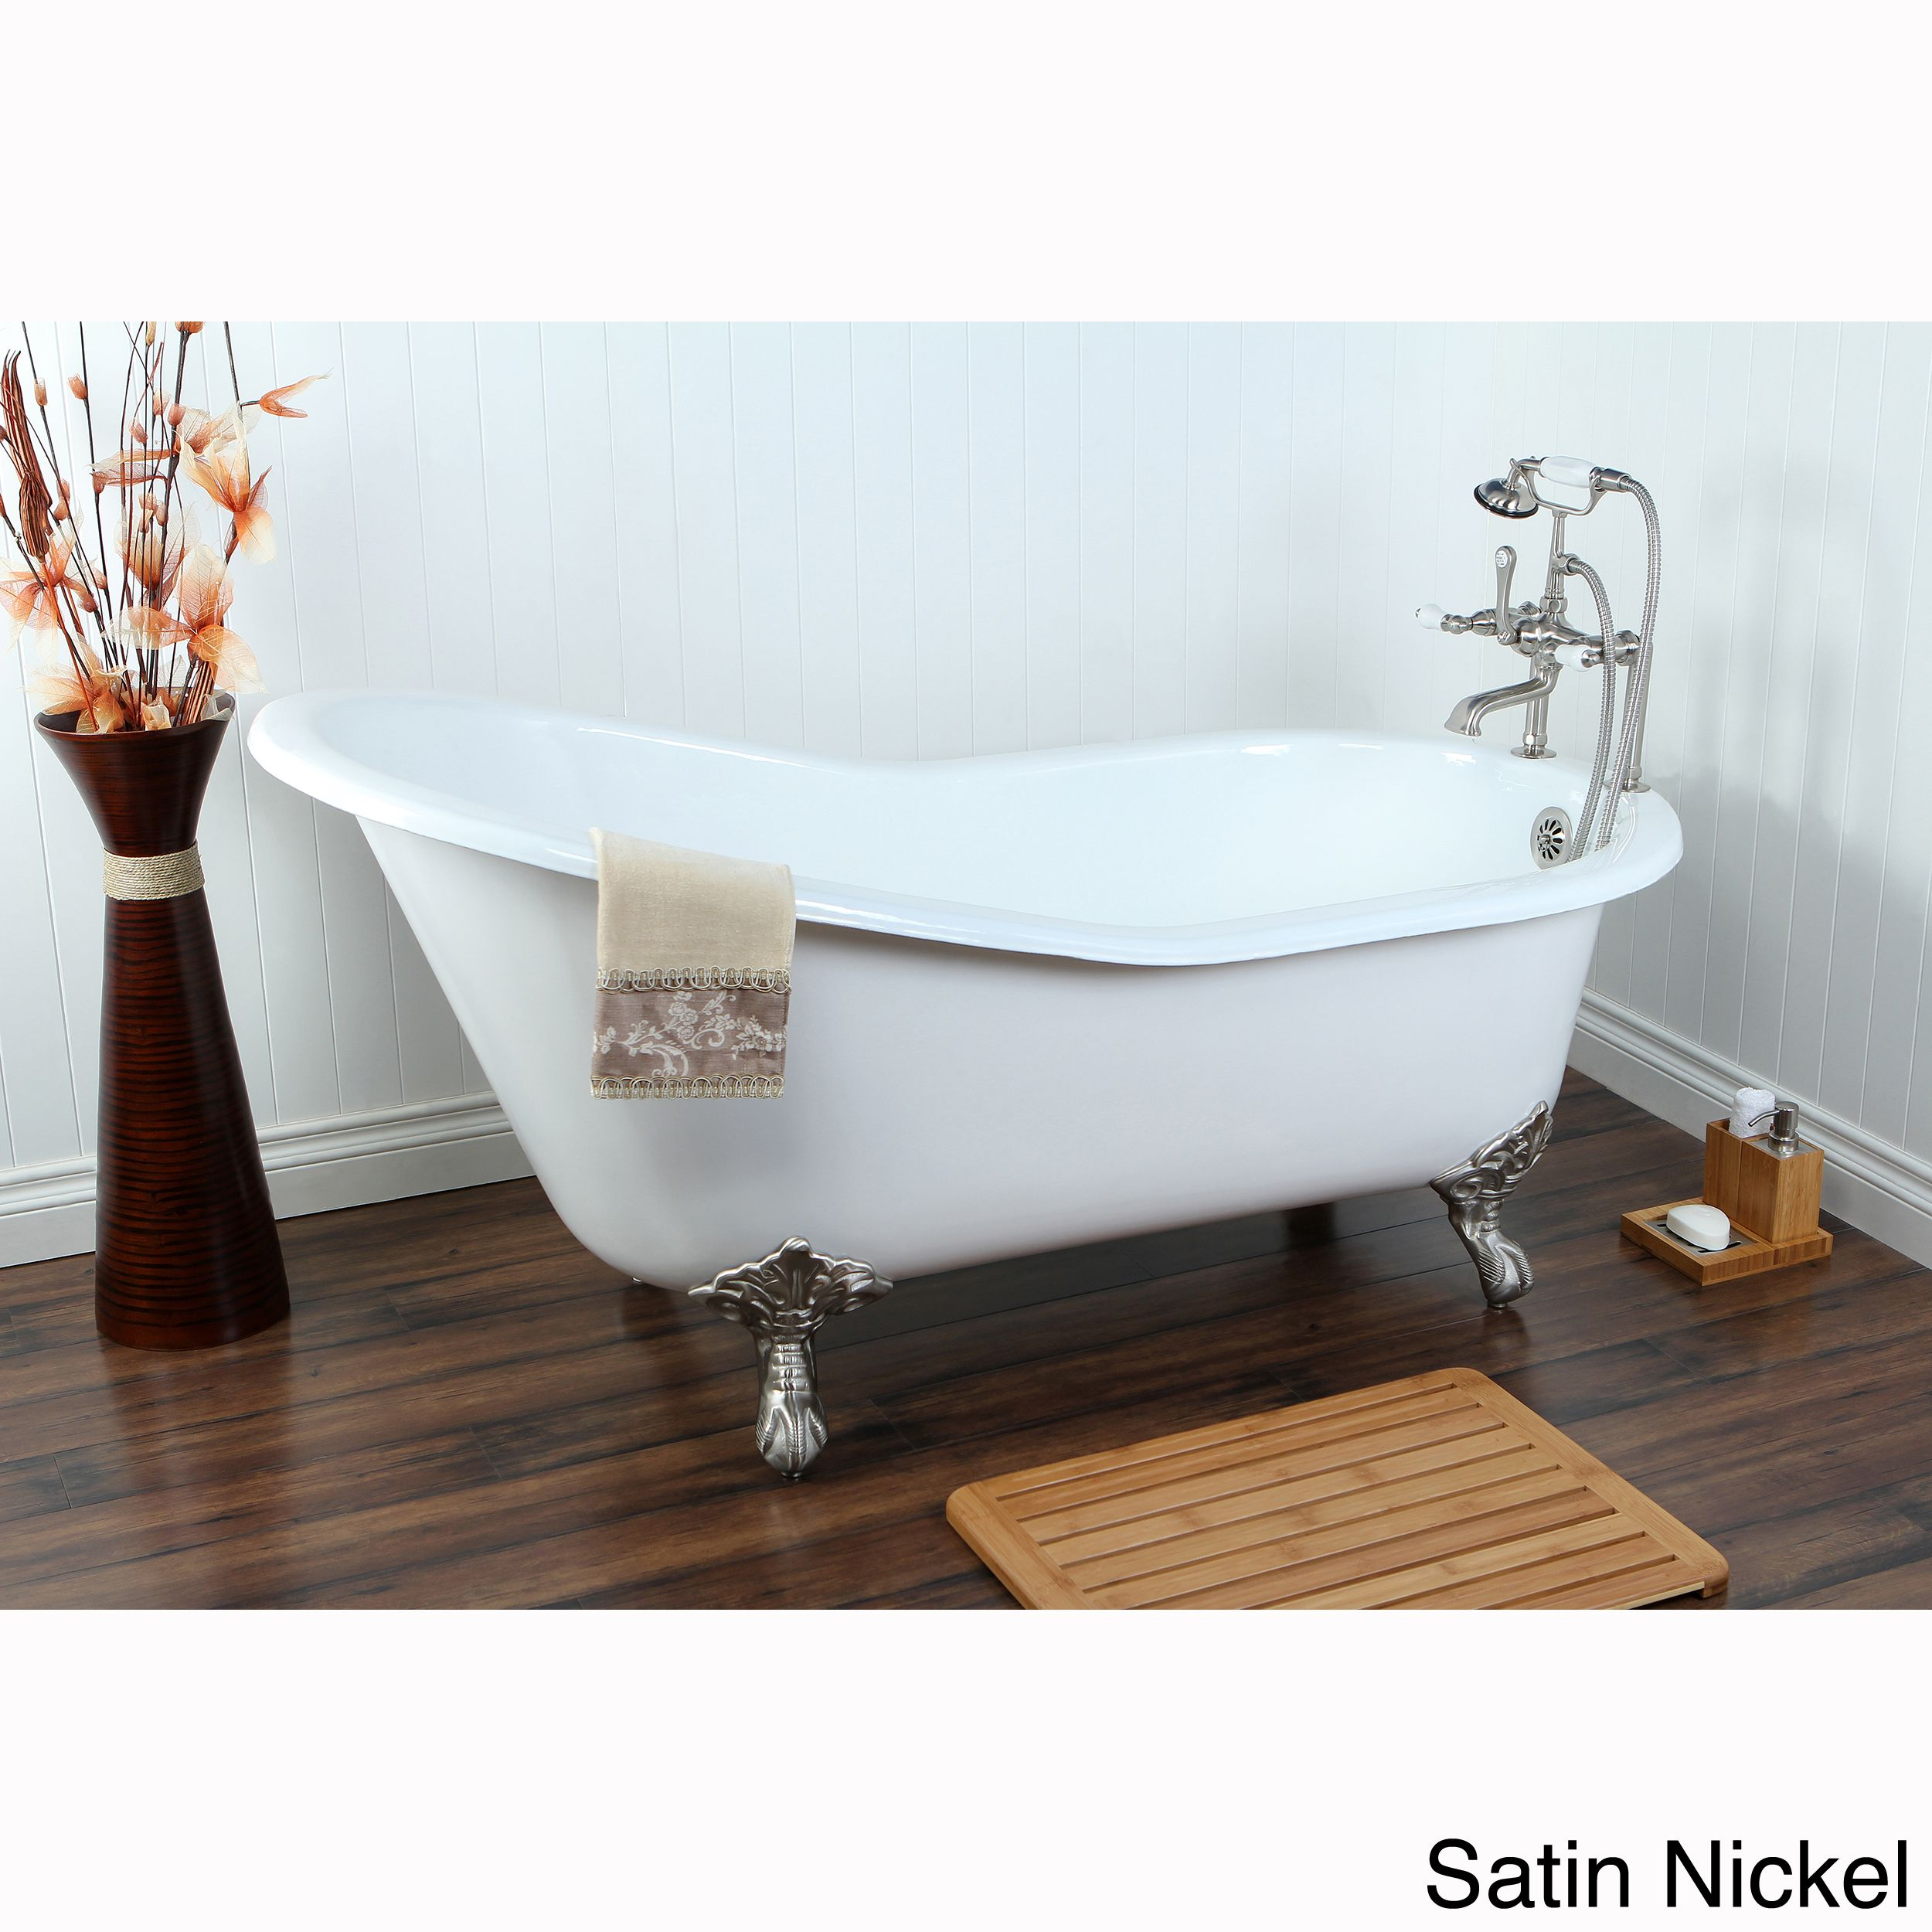 If you want a vintage look in your bathroom, this elegant cast-iron clawfoot tub is a great choice. With your choice of feet finishes and an exterior that can be painted to match your decor, this tub will be a unique focal point for your room.